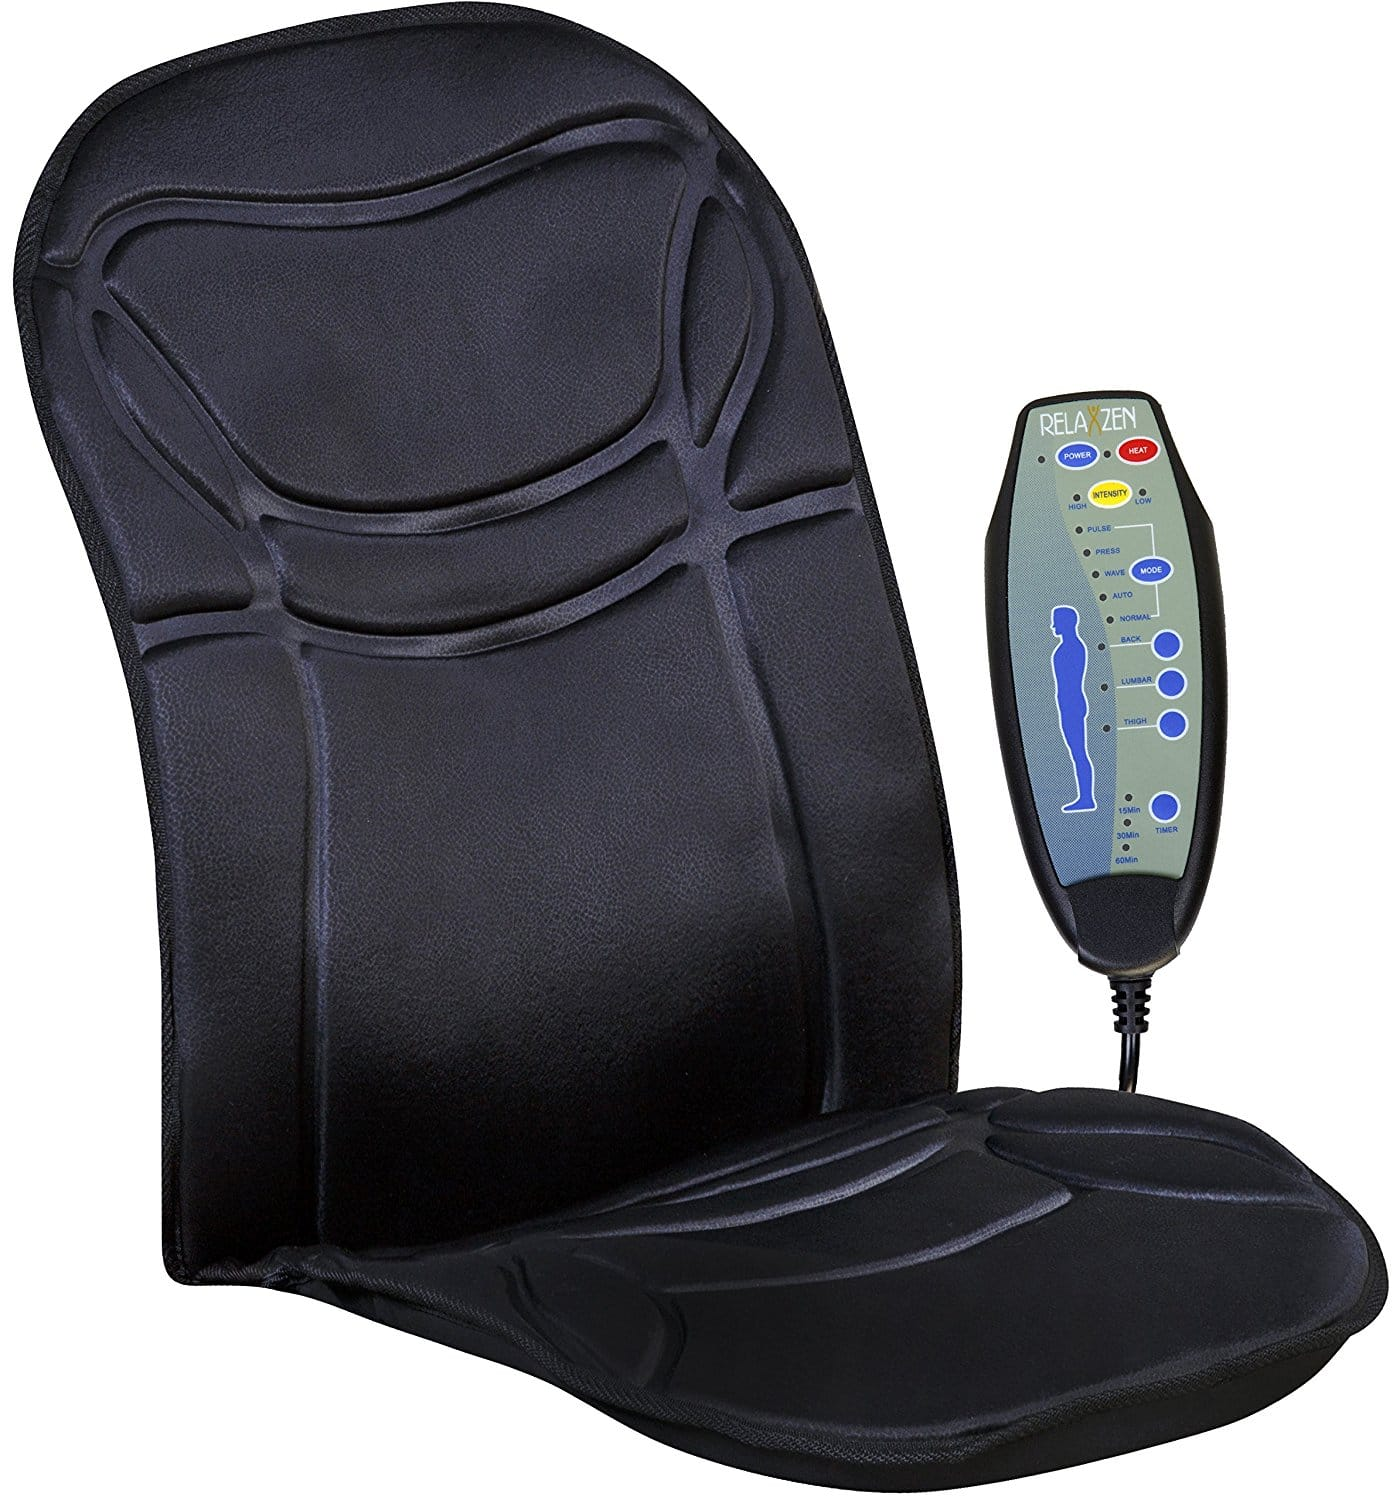 Heated Seat Covers - Relaxzen 60-2926